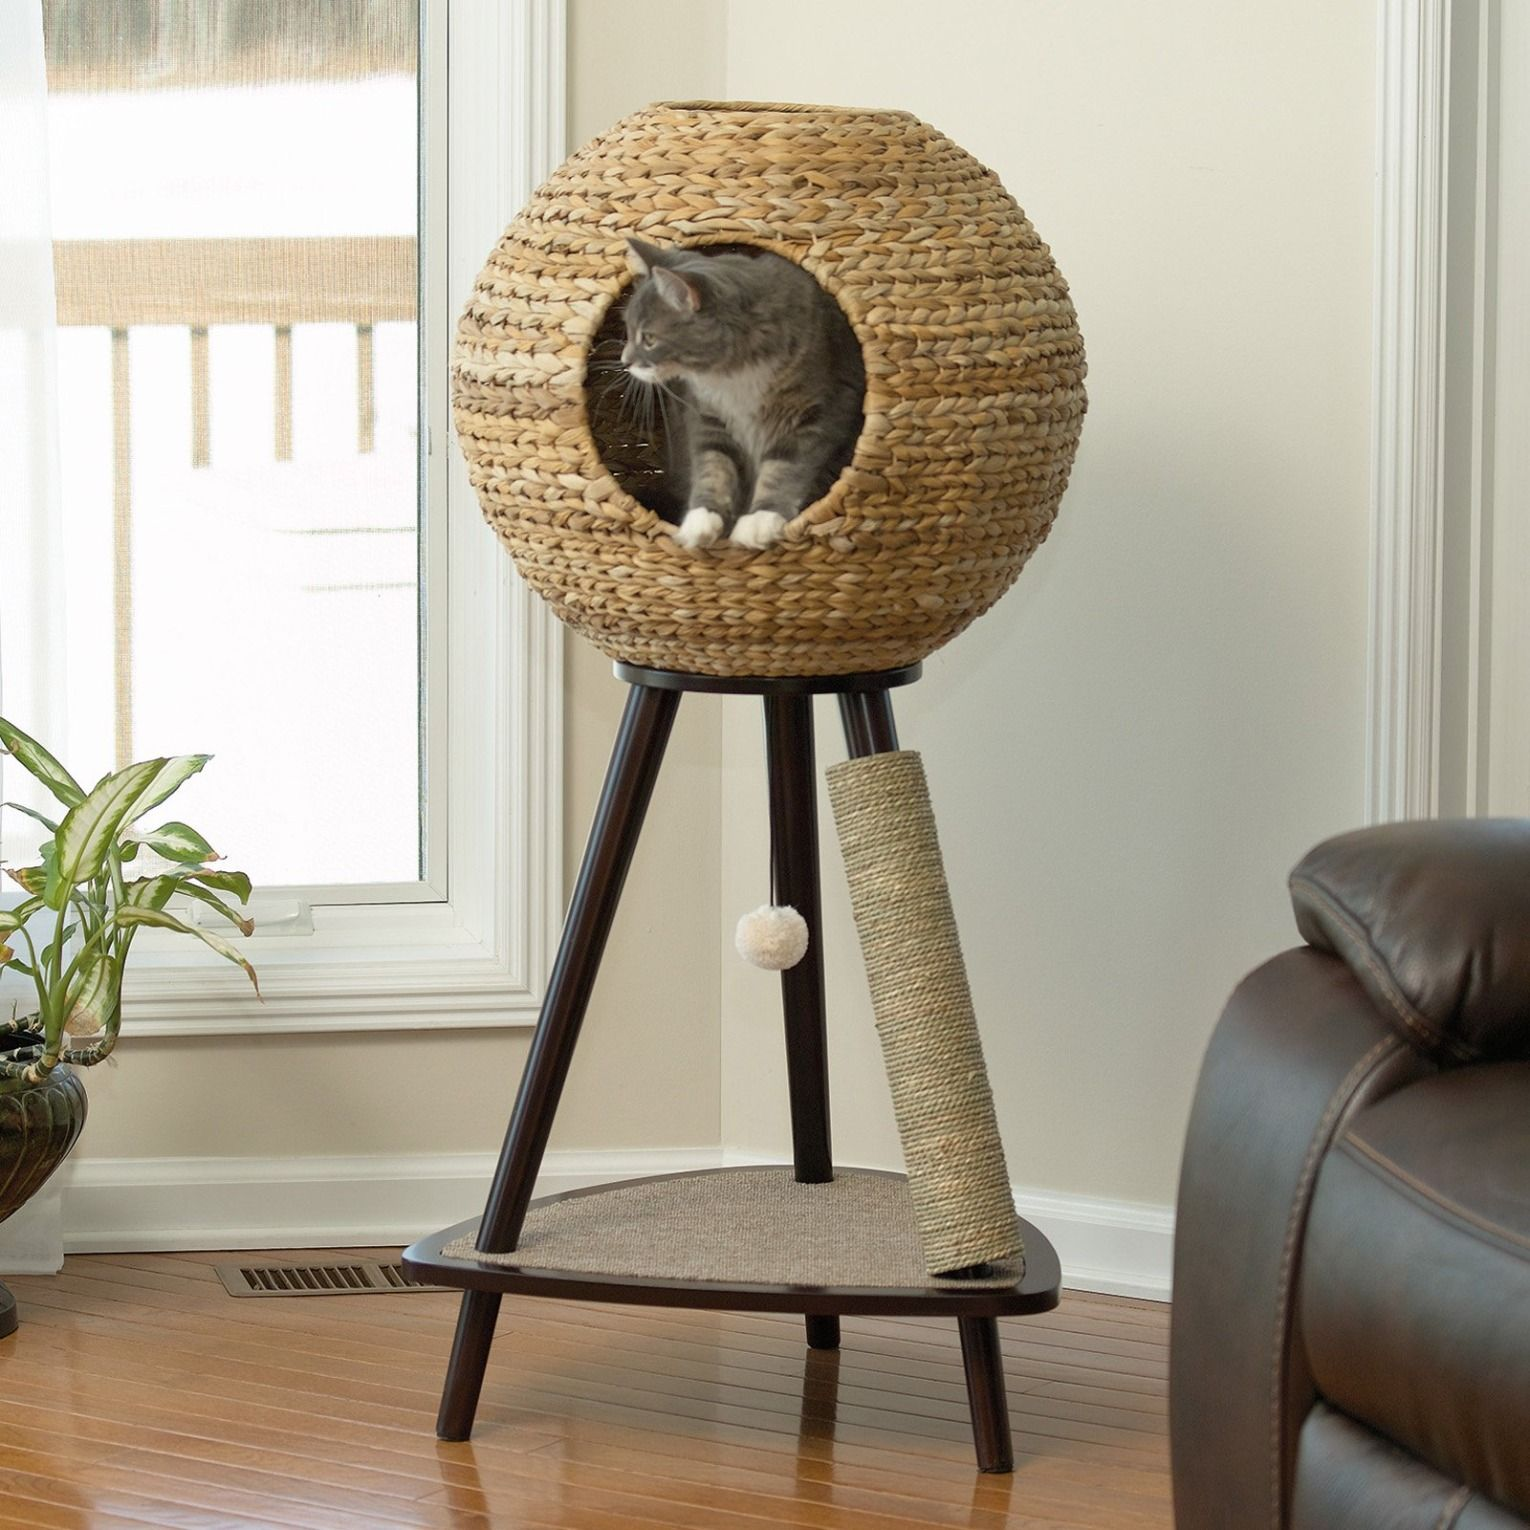 With This Stylish Cat Tower There S Finally Furniture You Ll Actually Want To Display In Your Living Room